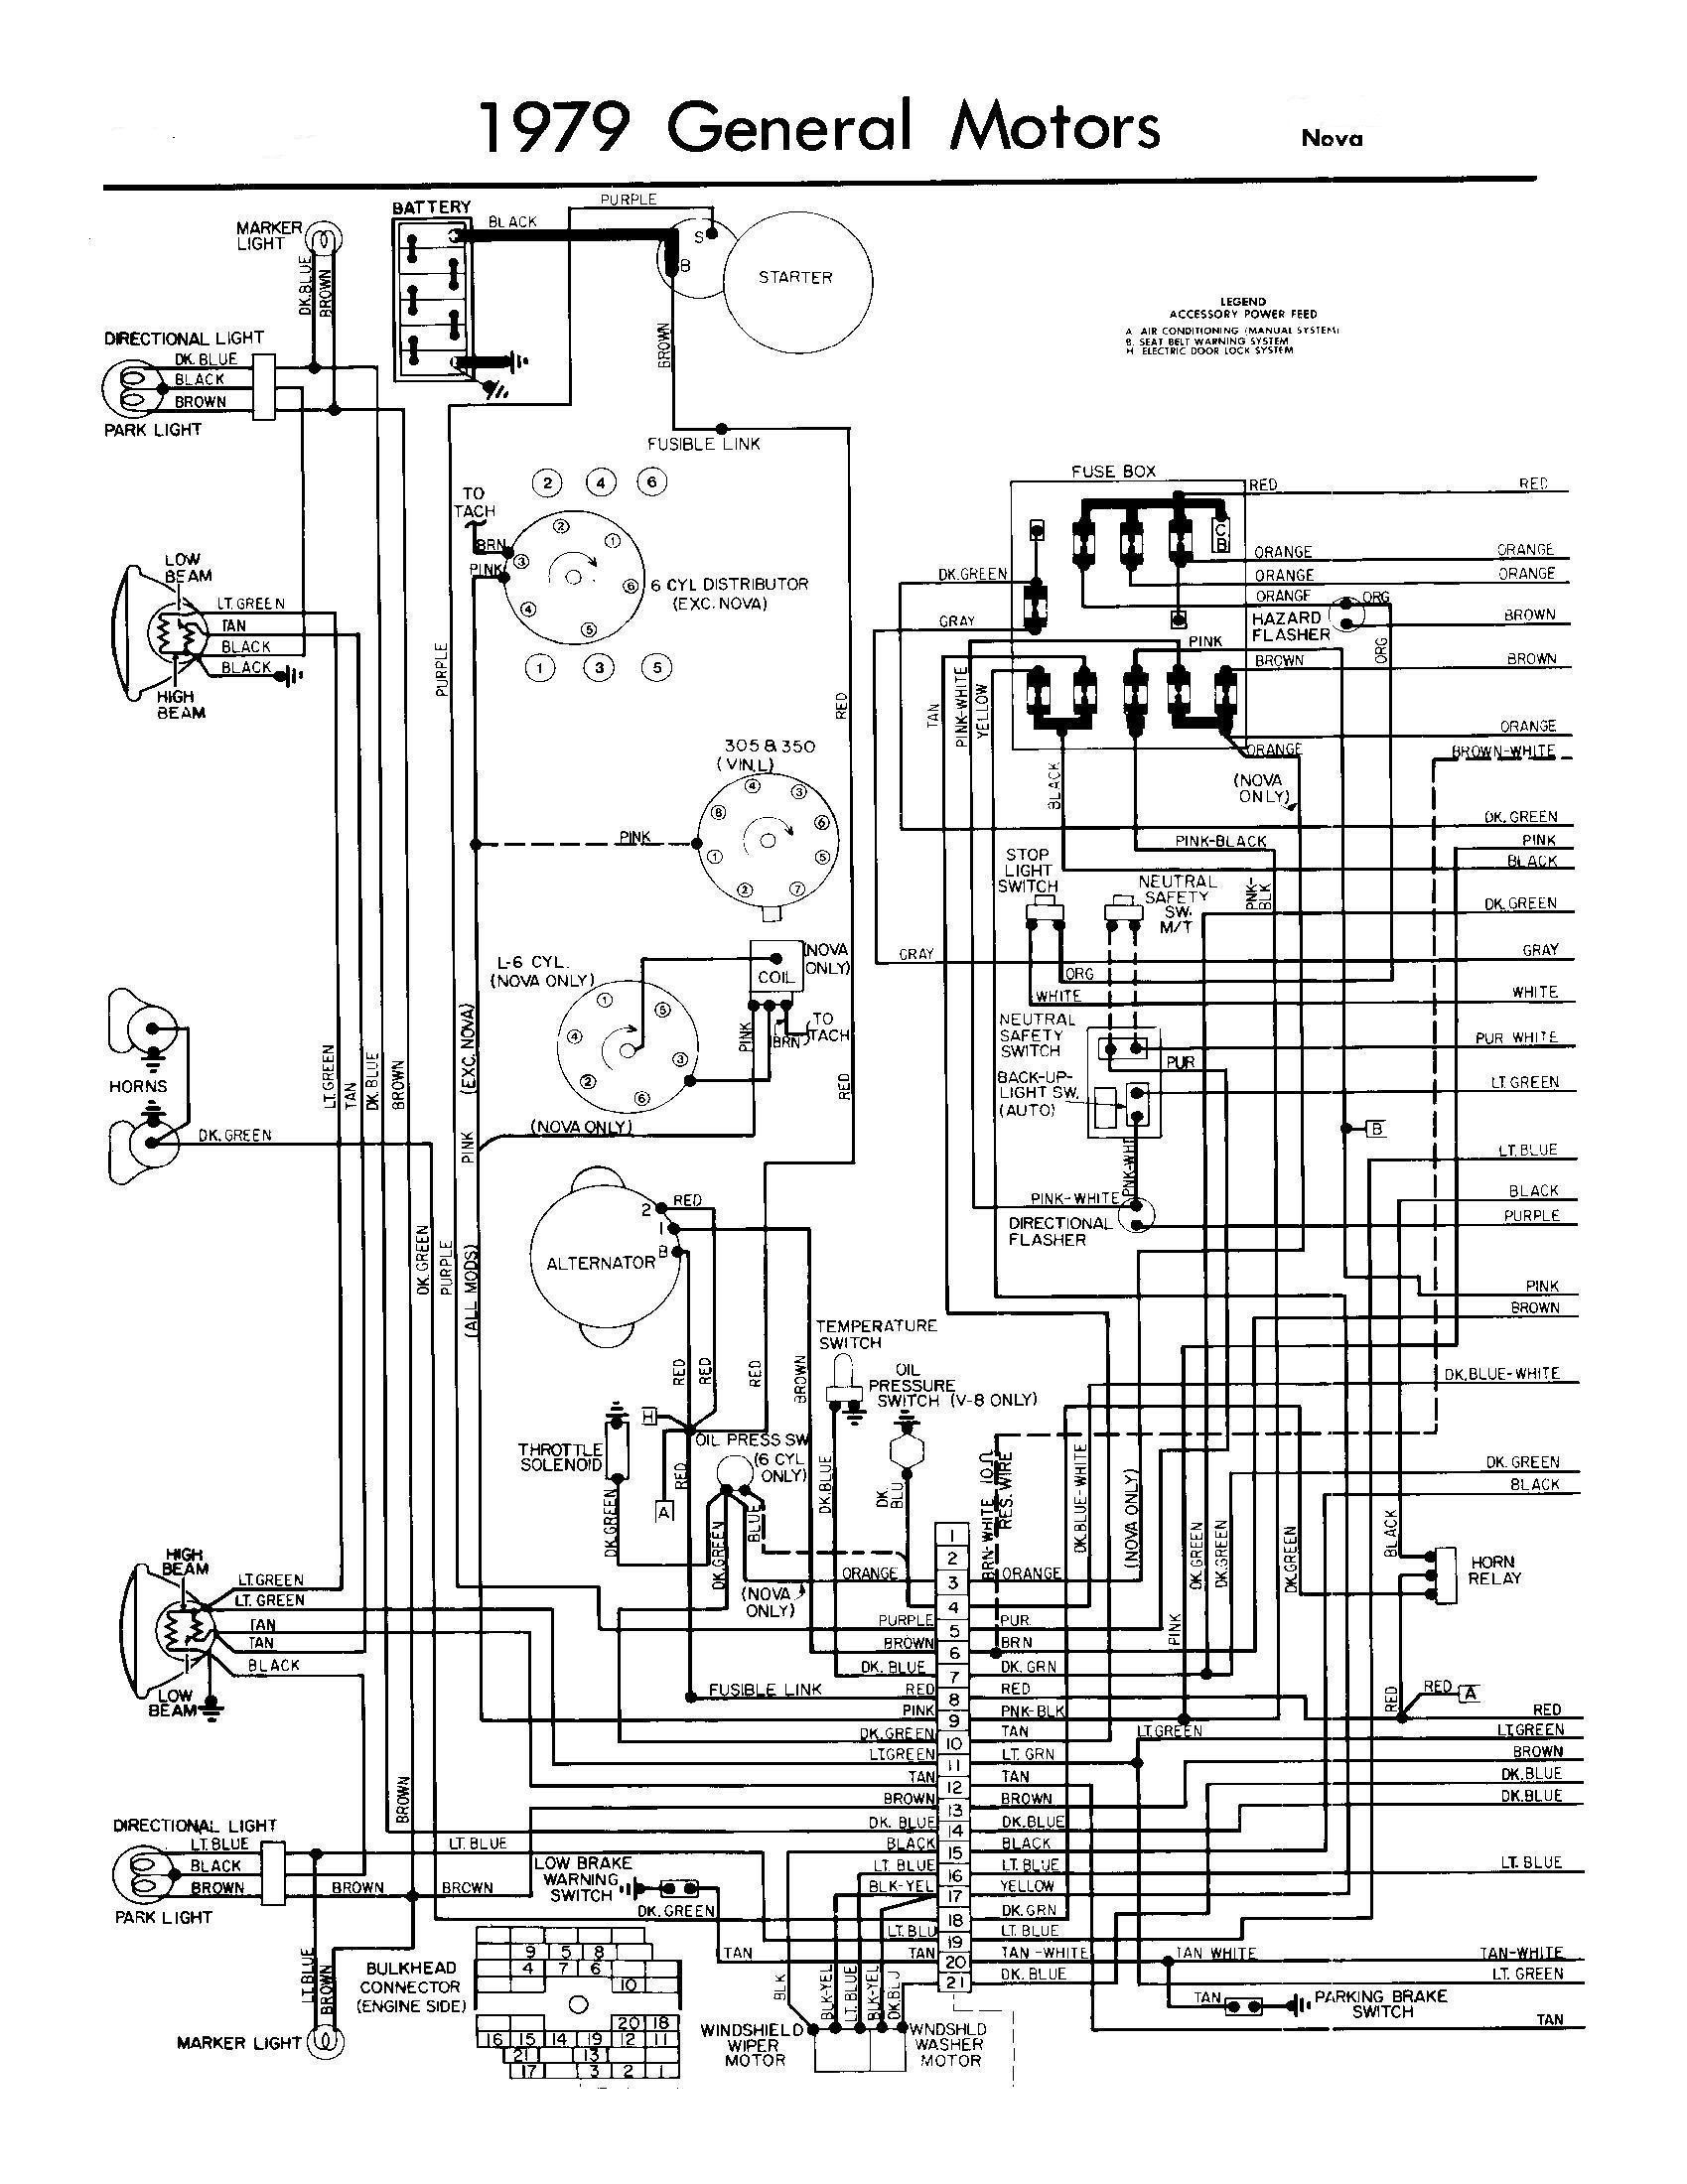 chevy truck wiring diagram 1974 chevy nova drag car chevy nova rh valmedwire co 1949 Chevy Truck Wiring Diagram 1975 Chevy Truck Wiring Diagram